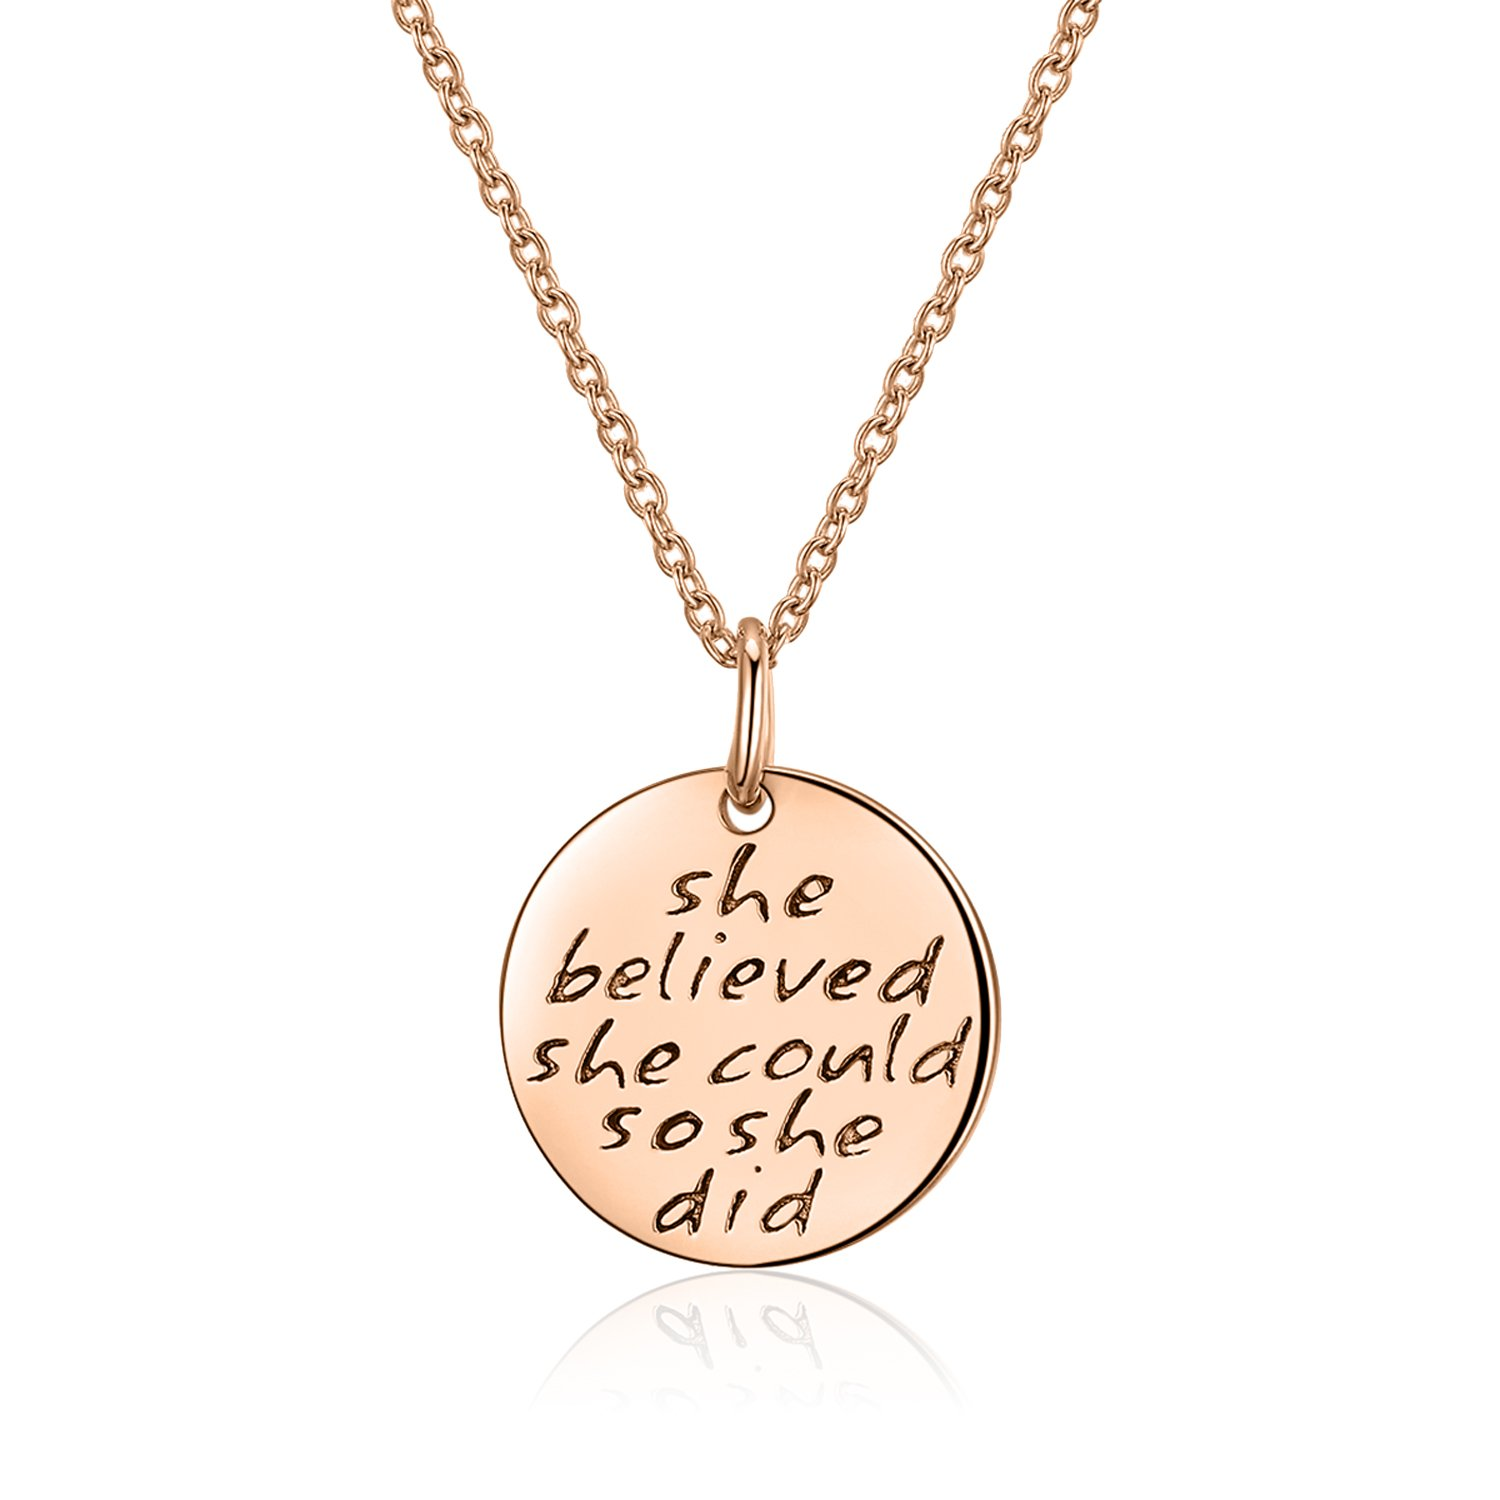 9bc7554b86f748 Annamate Women 925 Sterling Silver Disc Pendant Necklace Engraved She  Believed she Could so she did Personalized Inspiration Quote Jewelry:  Amazon.co.uk: ...